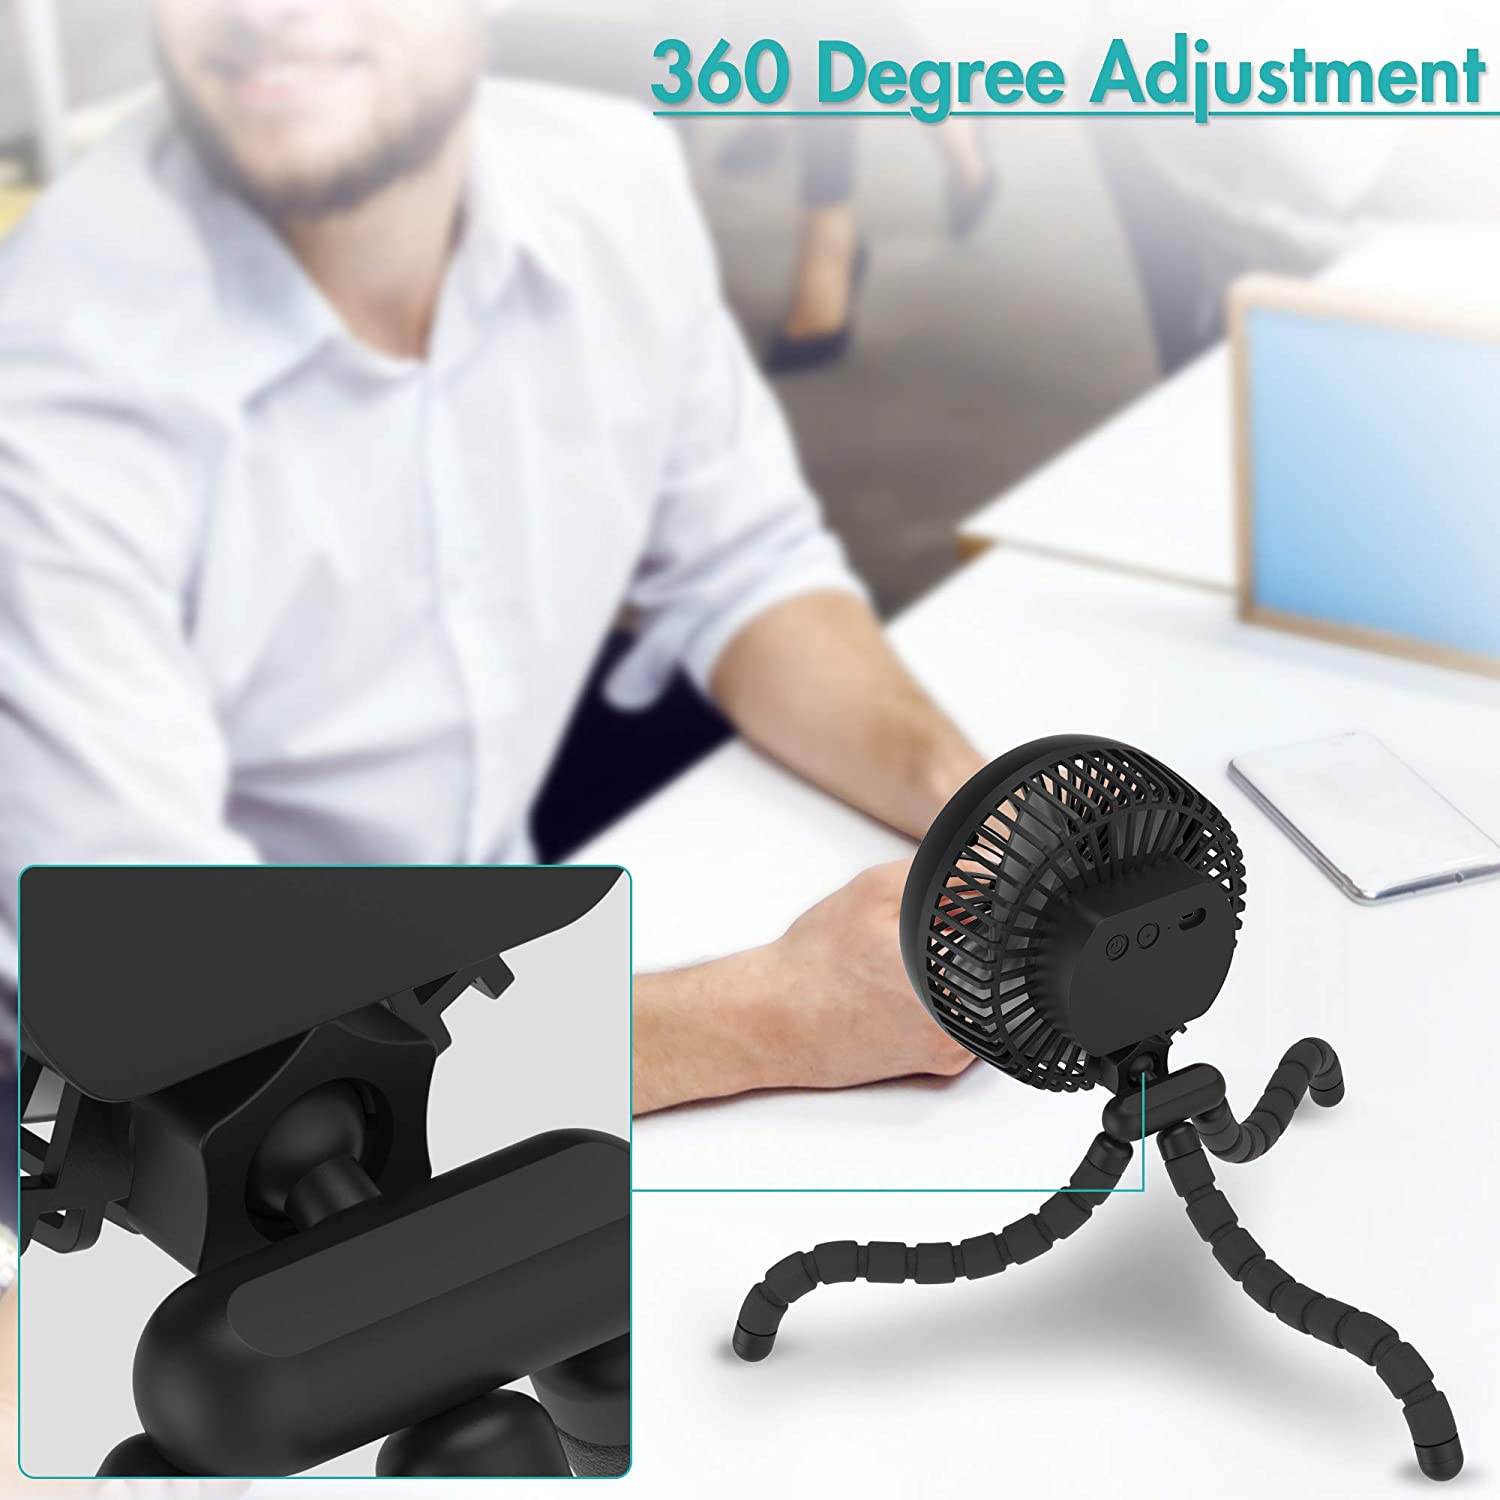 360/° Rotate Ultra Quiet USB Fan for Stroller Treadmill Tent Sturdy Tripod 10000mAh Battery Powered Clip On Fan With 53H Long Working Time for Hurricane Outage 6-Inch Versatile Fan Strong Wind 4 Speeds